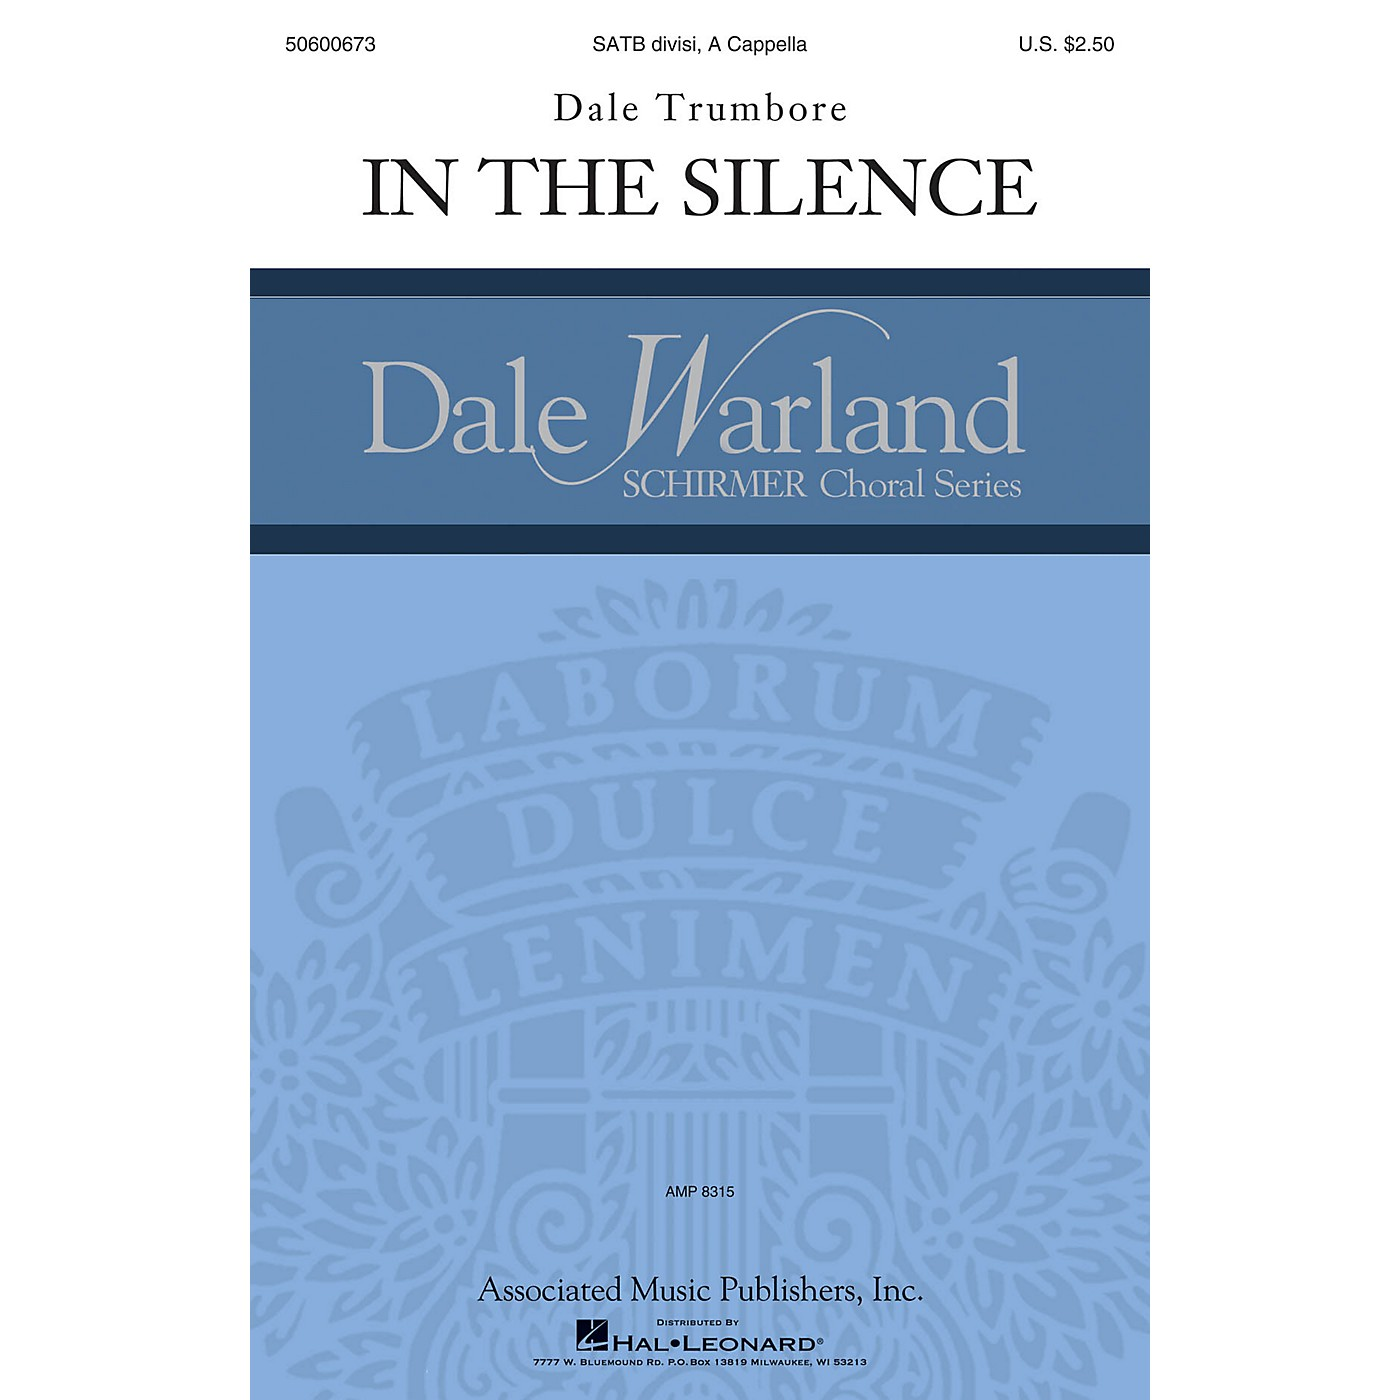 G. Schirmer In the Silence (Dale Warland Choral Series) SATB a cappella composed by Dale Trumbore thumbnail